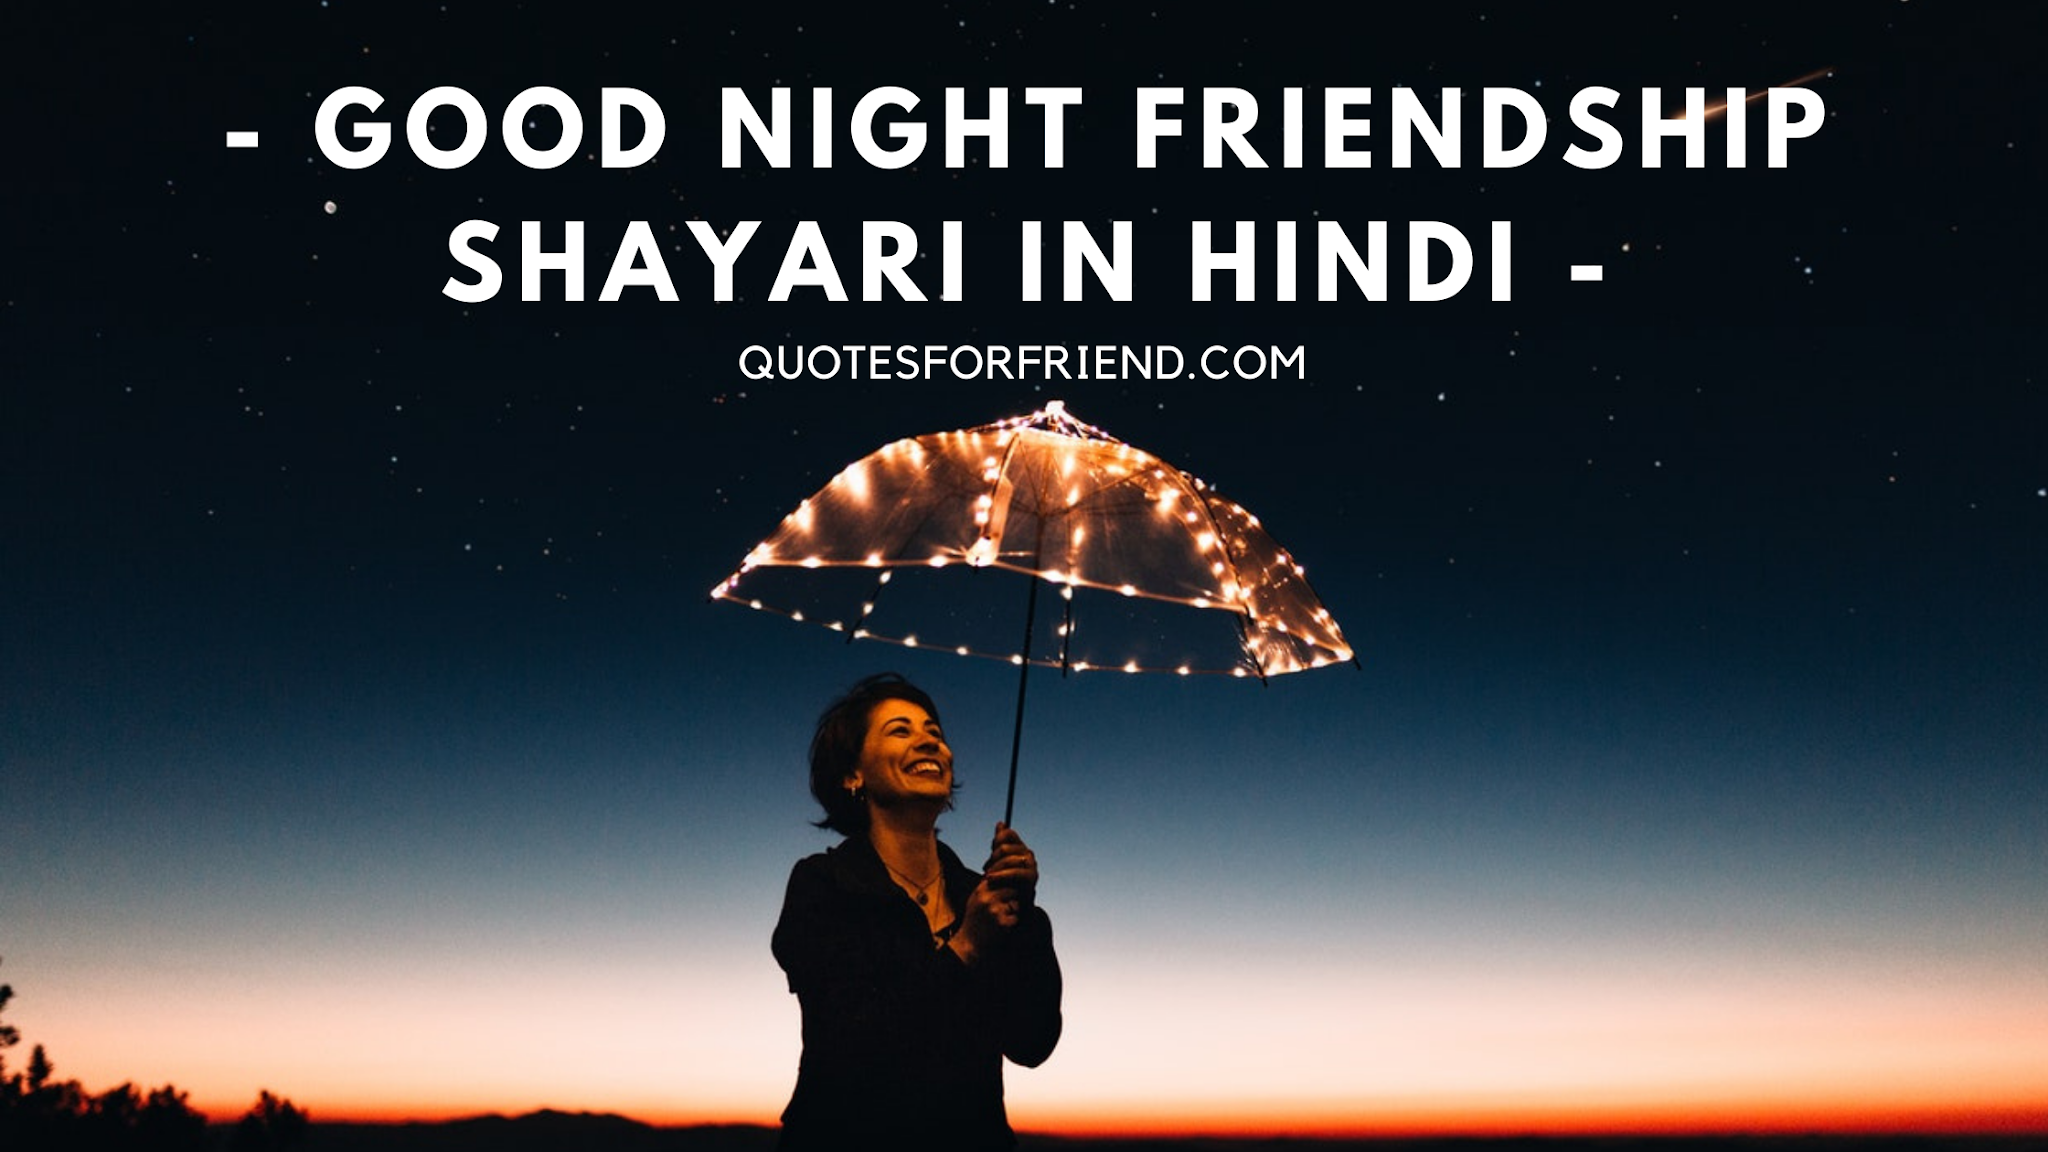 good night friendship shayari in hindi, good night shayari in hindi for friends, good night shayari for friend, friend good night shayari, good night dosti shayari in hindi, good night shayari friend, good night shayari for best friend, good night sms hindi for friends.